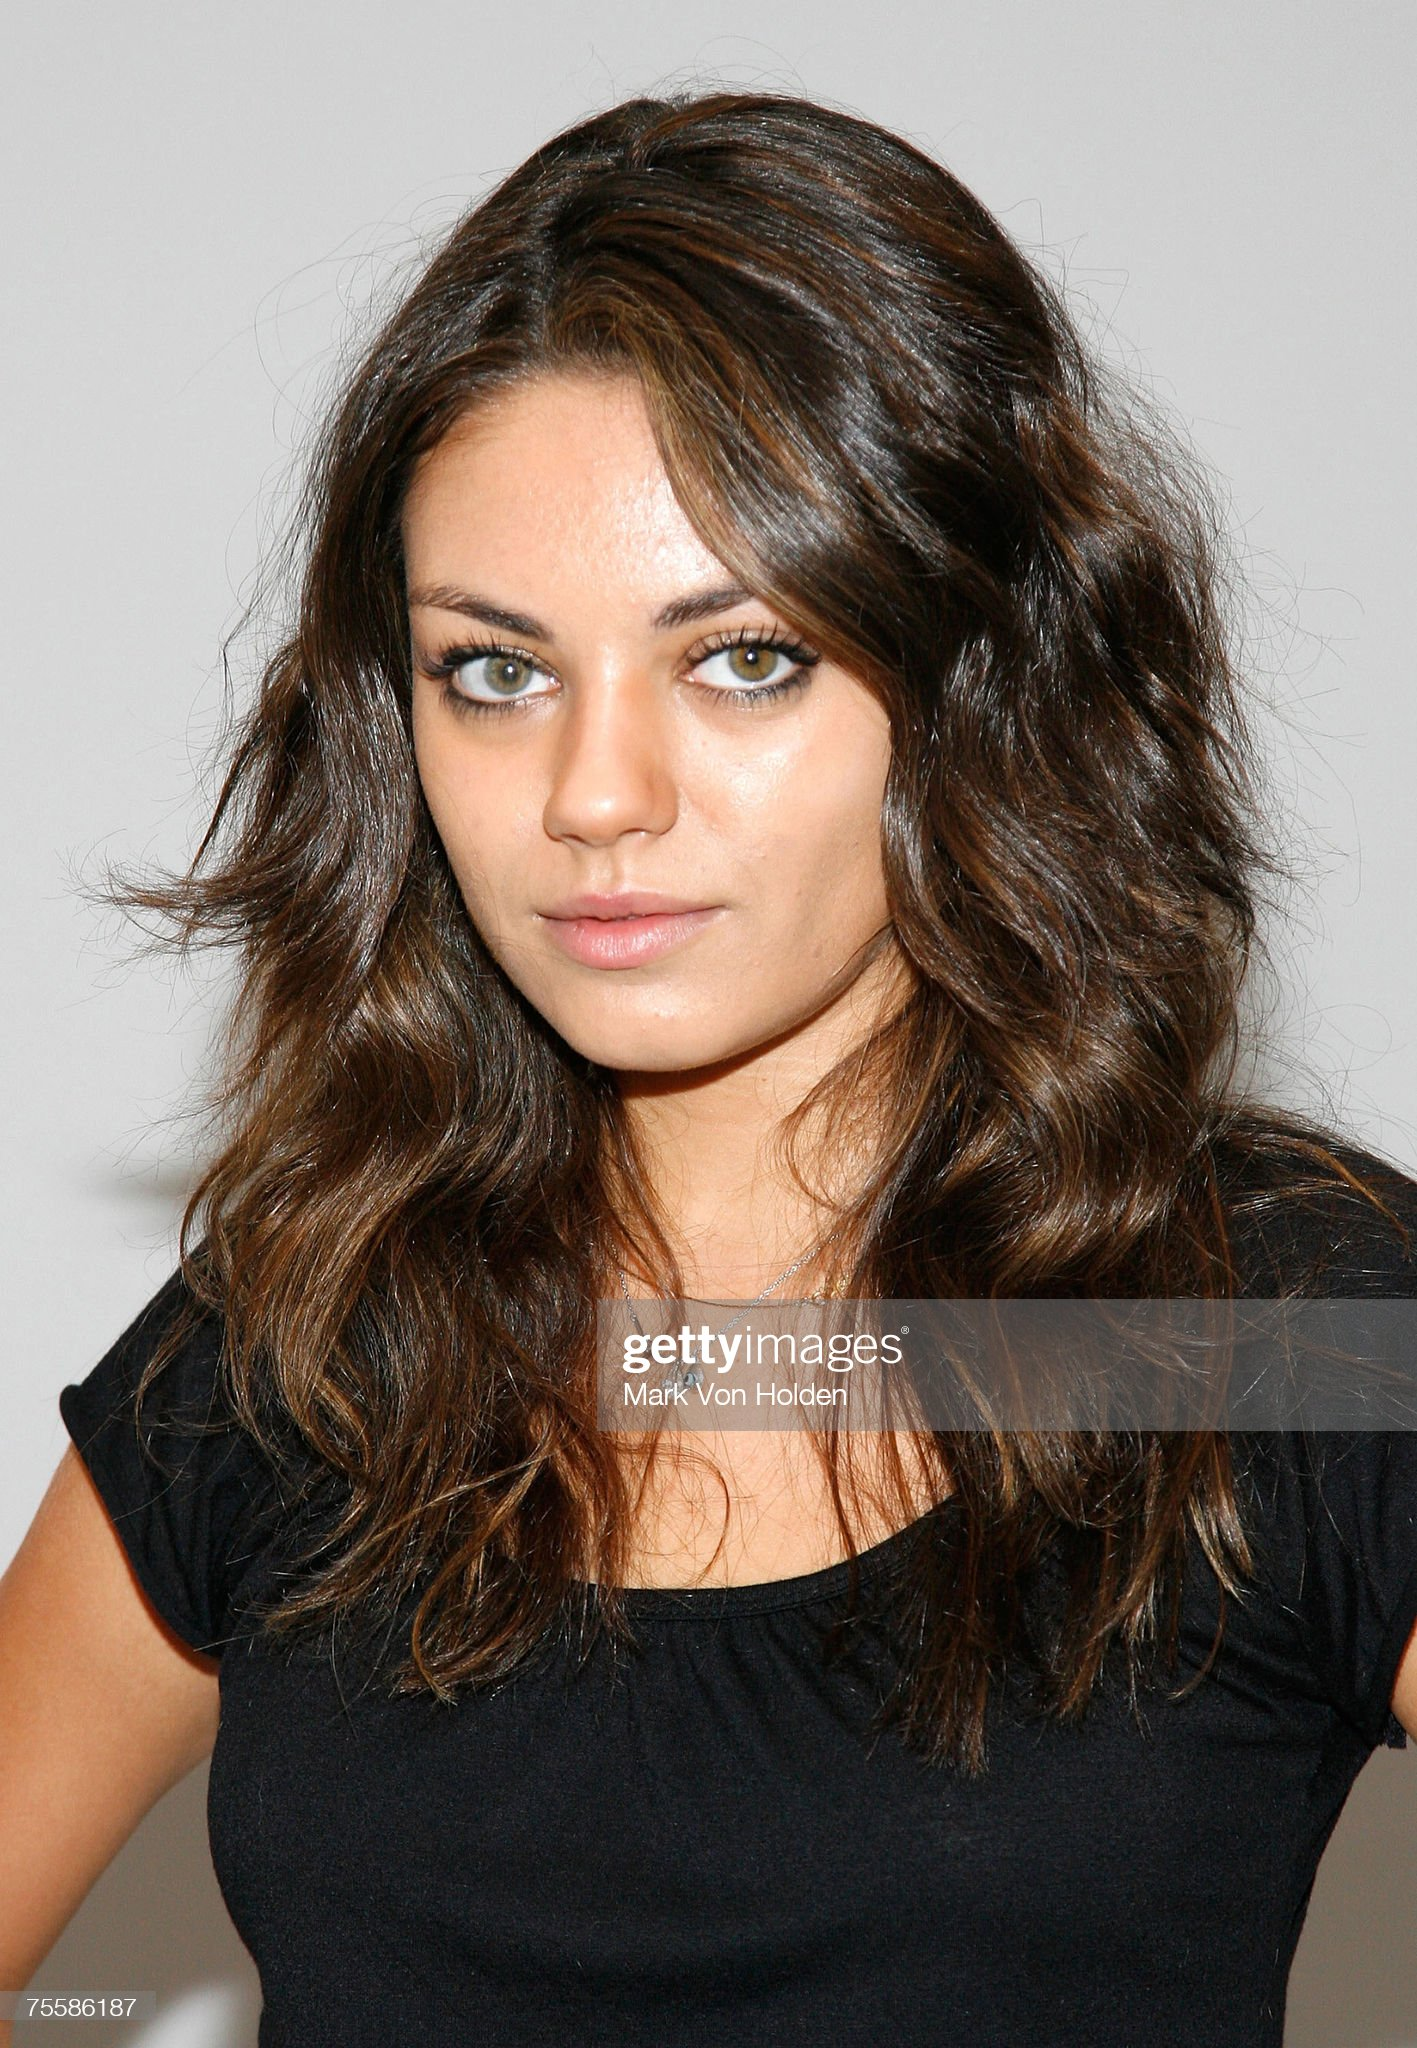 Hazel eyes - Personas famosas con los ojos de color AVELLANA Actor-mila-kunis-at-the-family-guy-press-conference-during-the-just-picture-id75586187?s=2048x2048